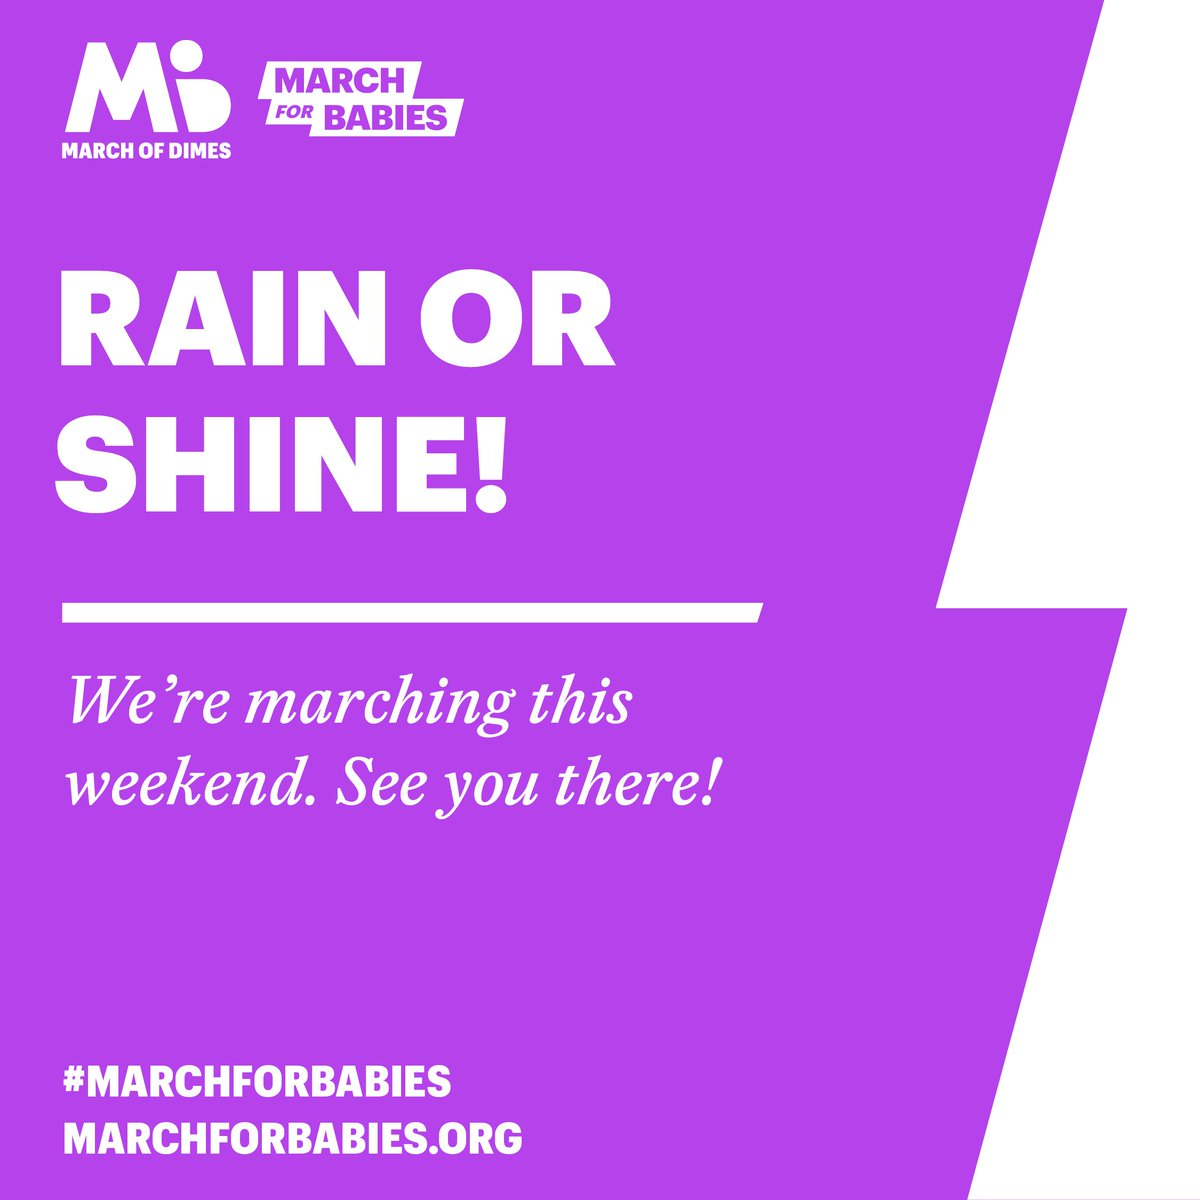 March for Babies on Twitter: